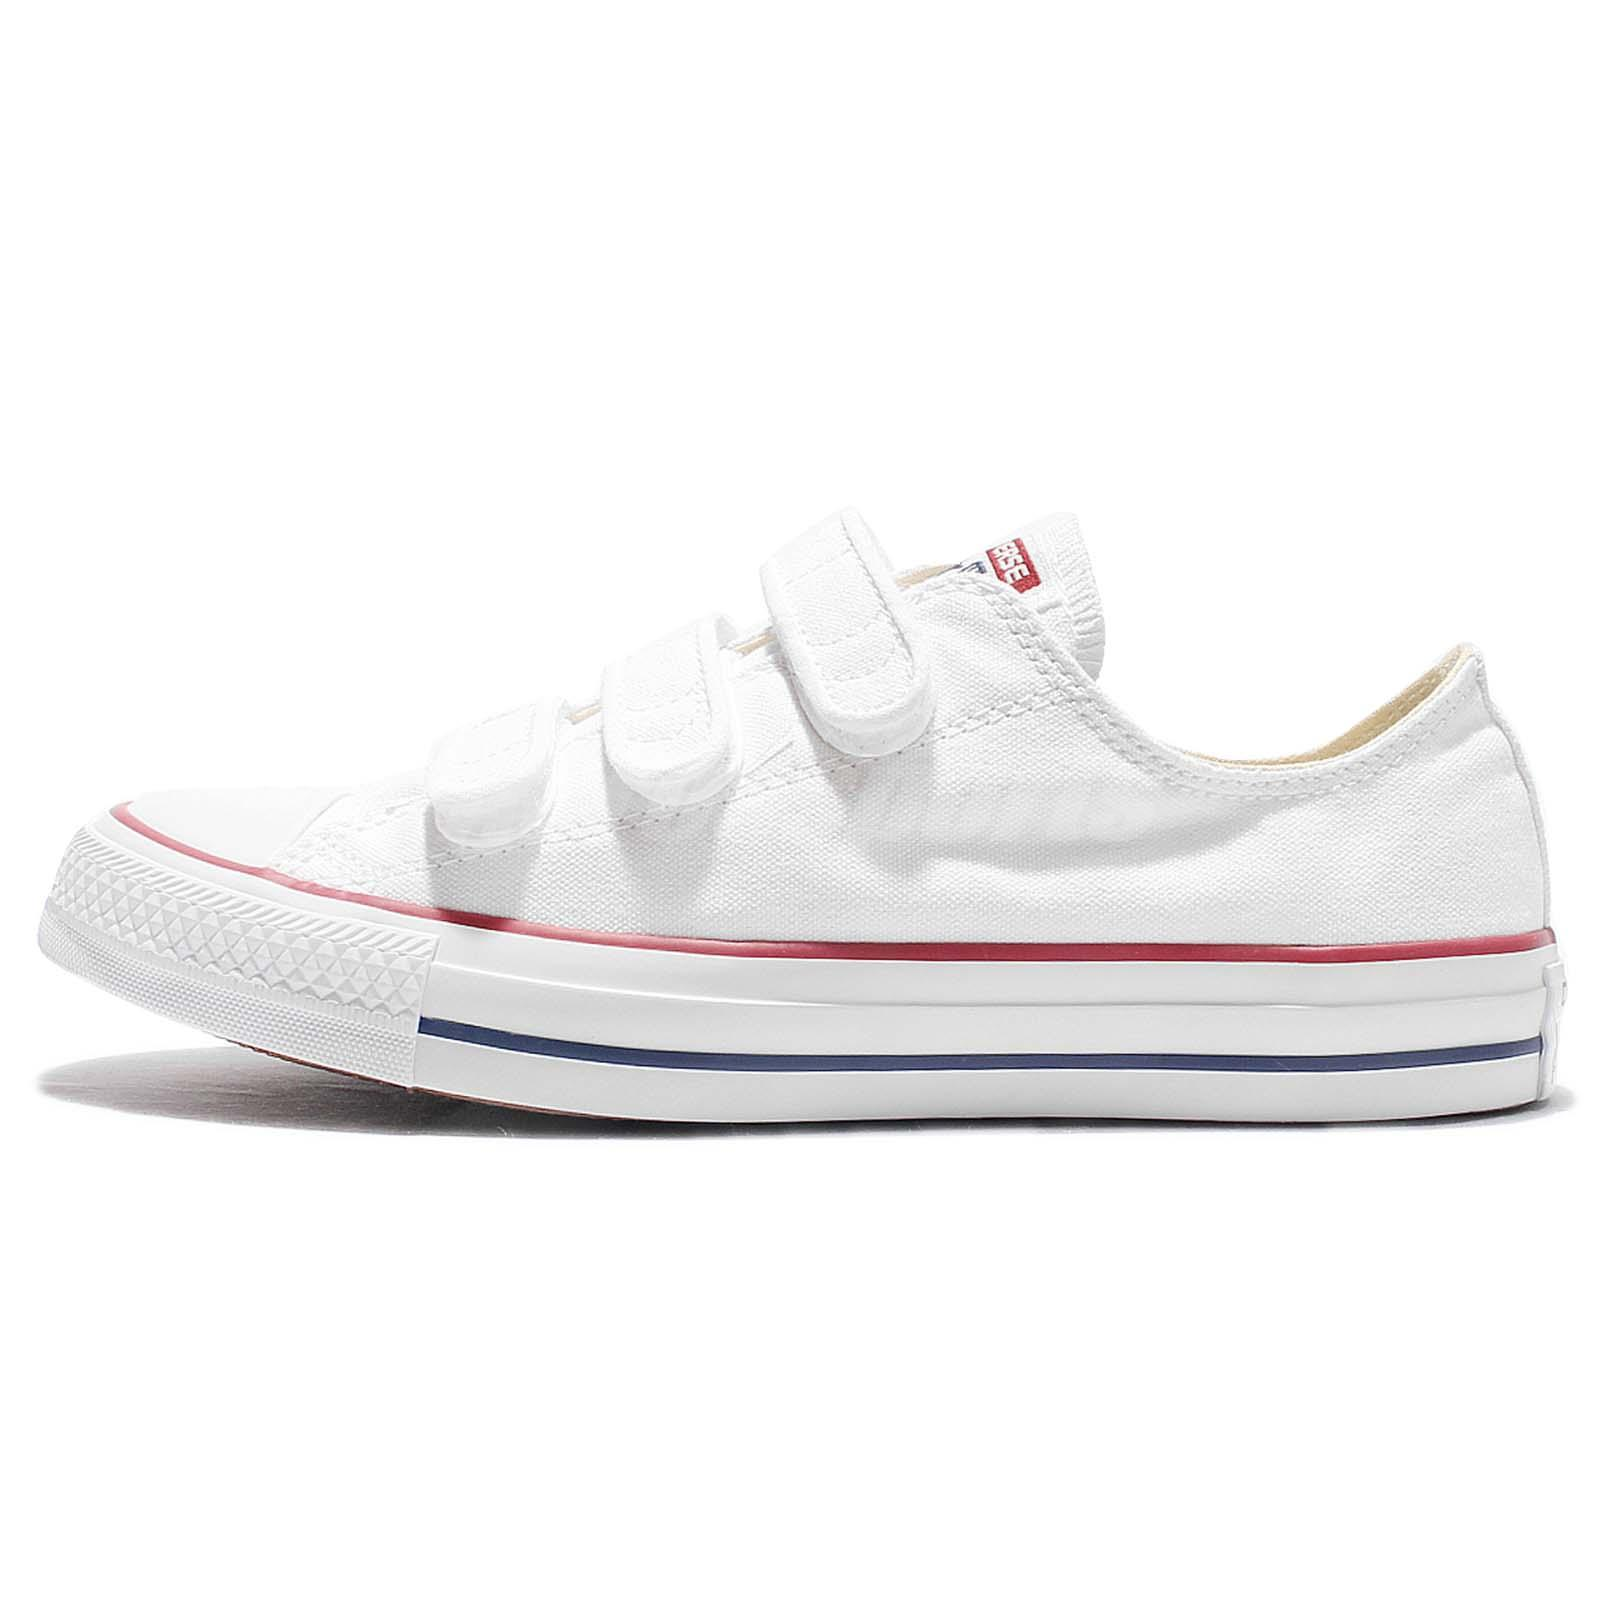 Converse Chuck Taylor All Star V3 White Canvas Strap Men Casual Shoes 105042